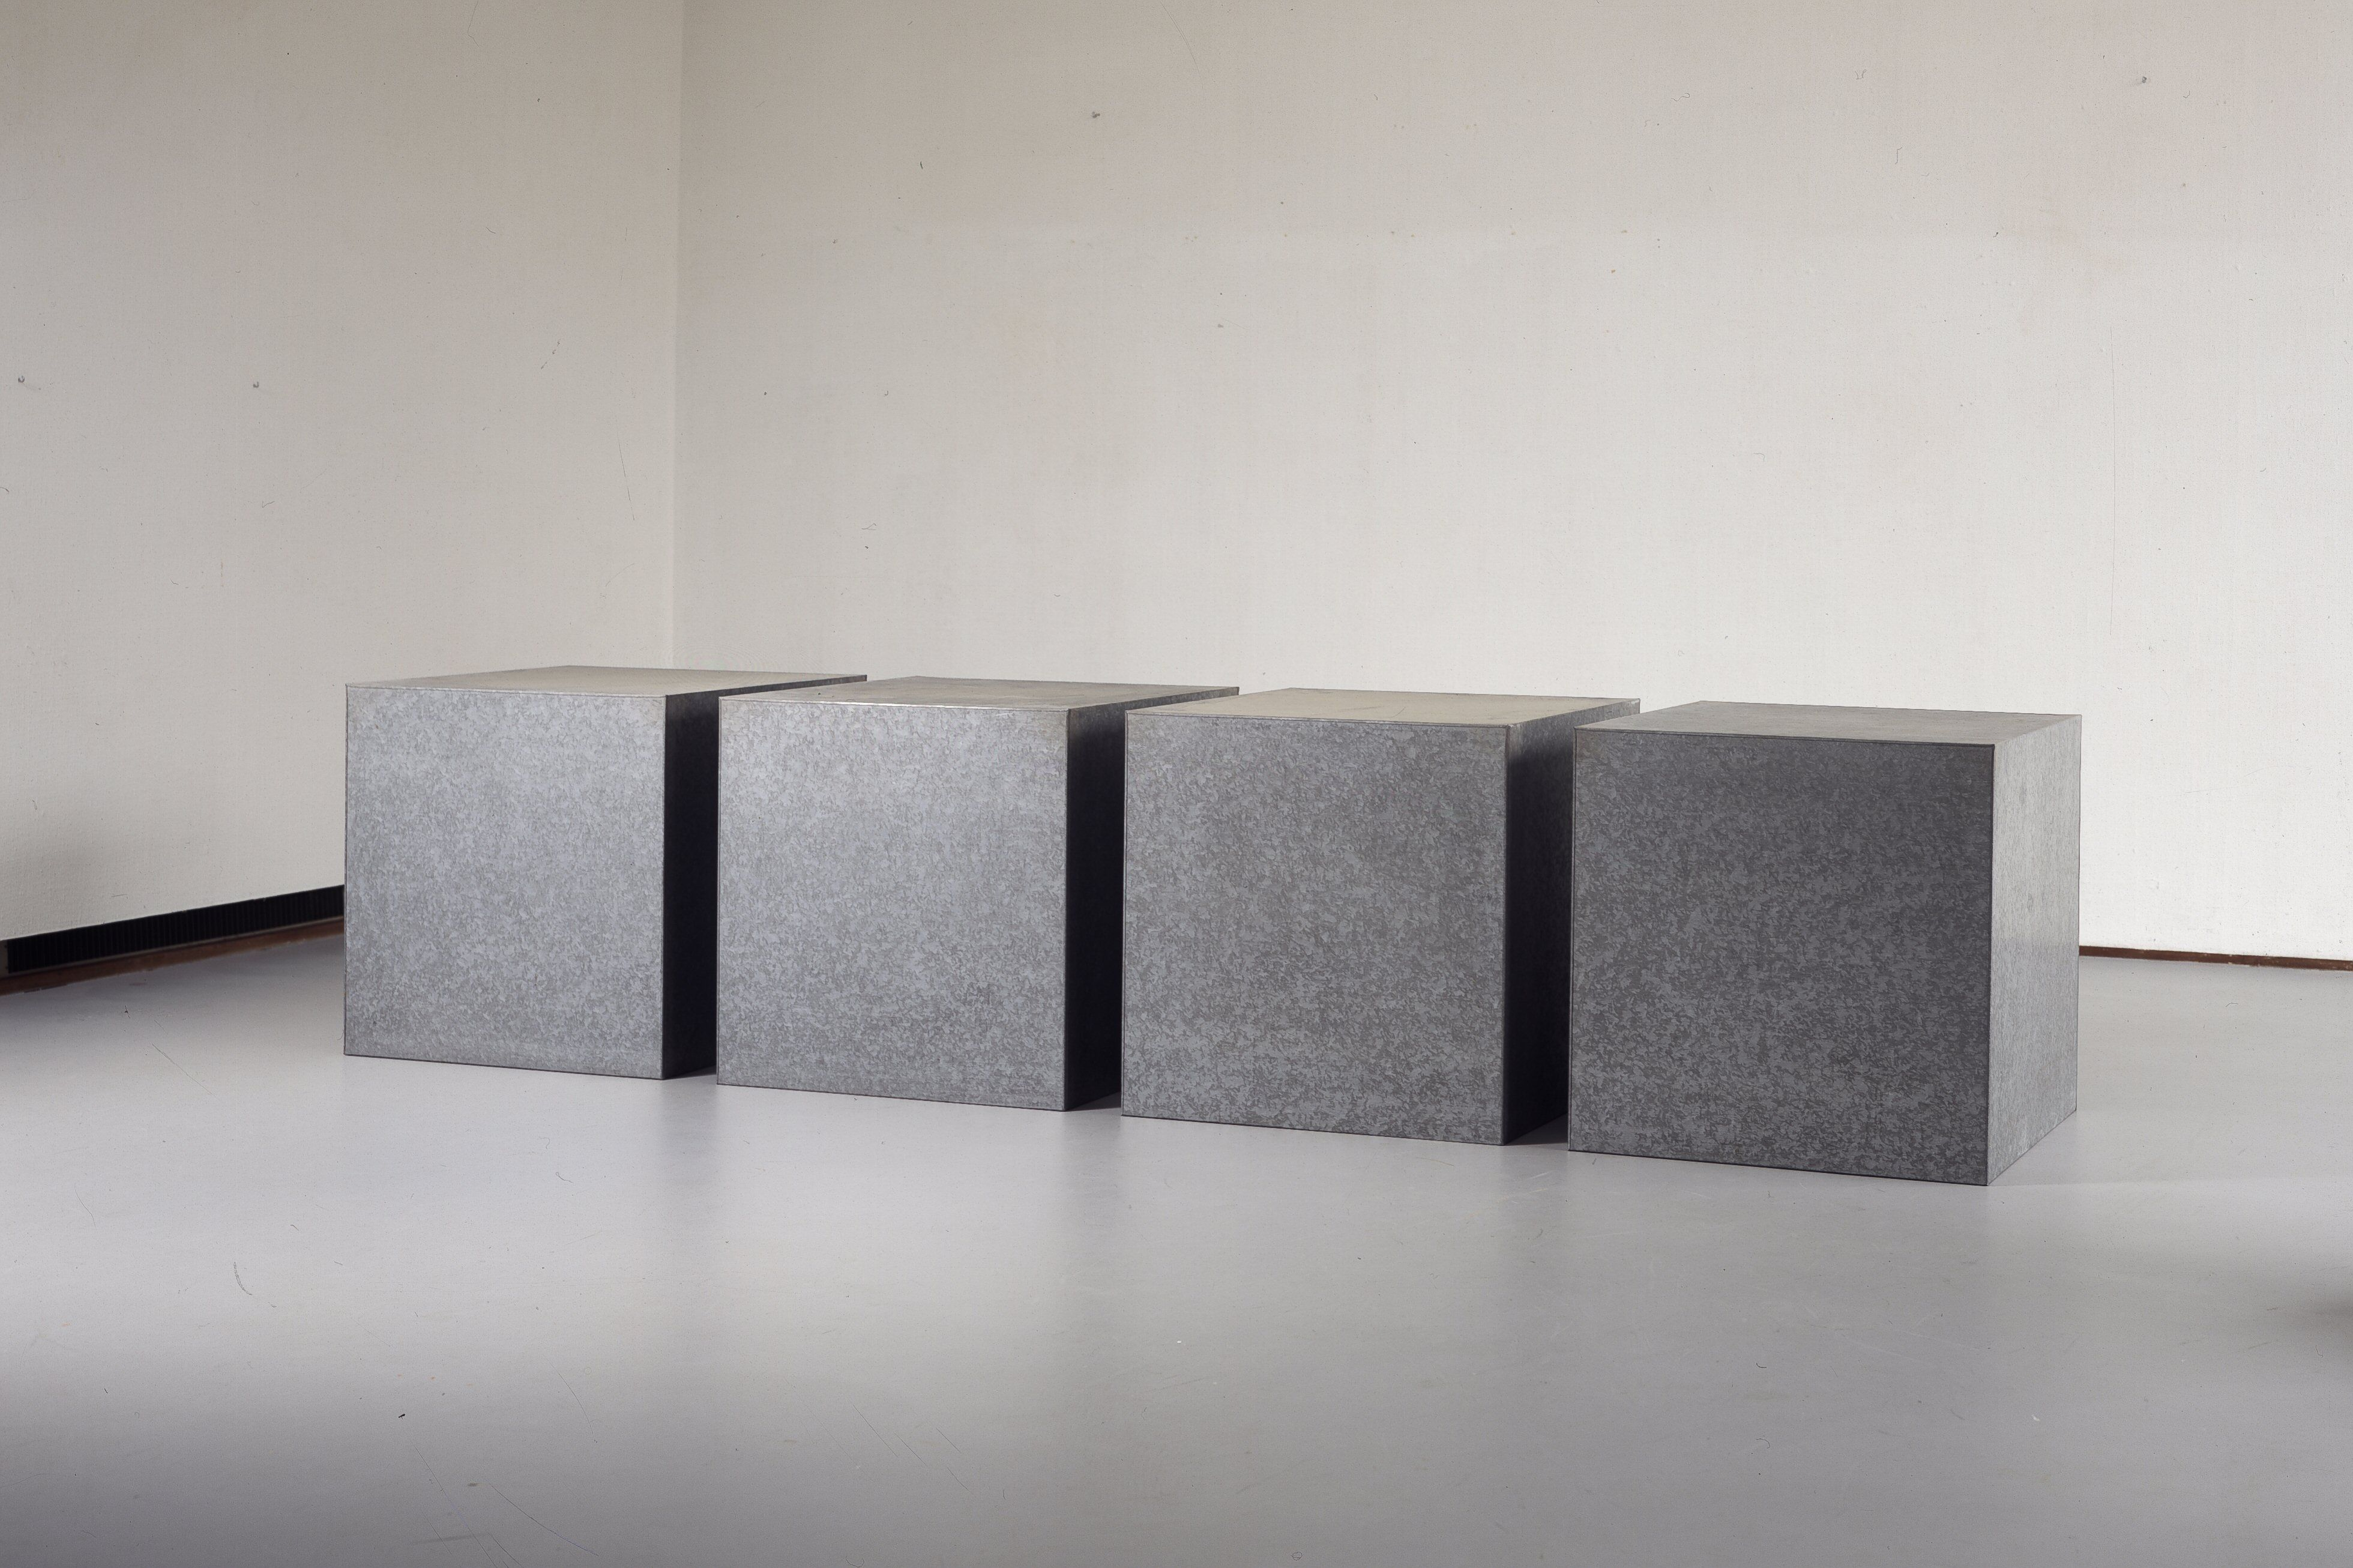 Donald judd galvanized iron 17 january 1973 for Material minimalism